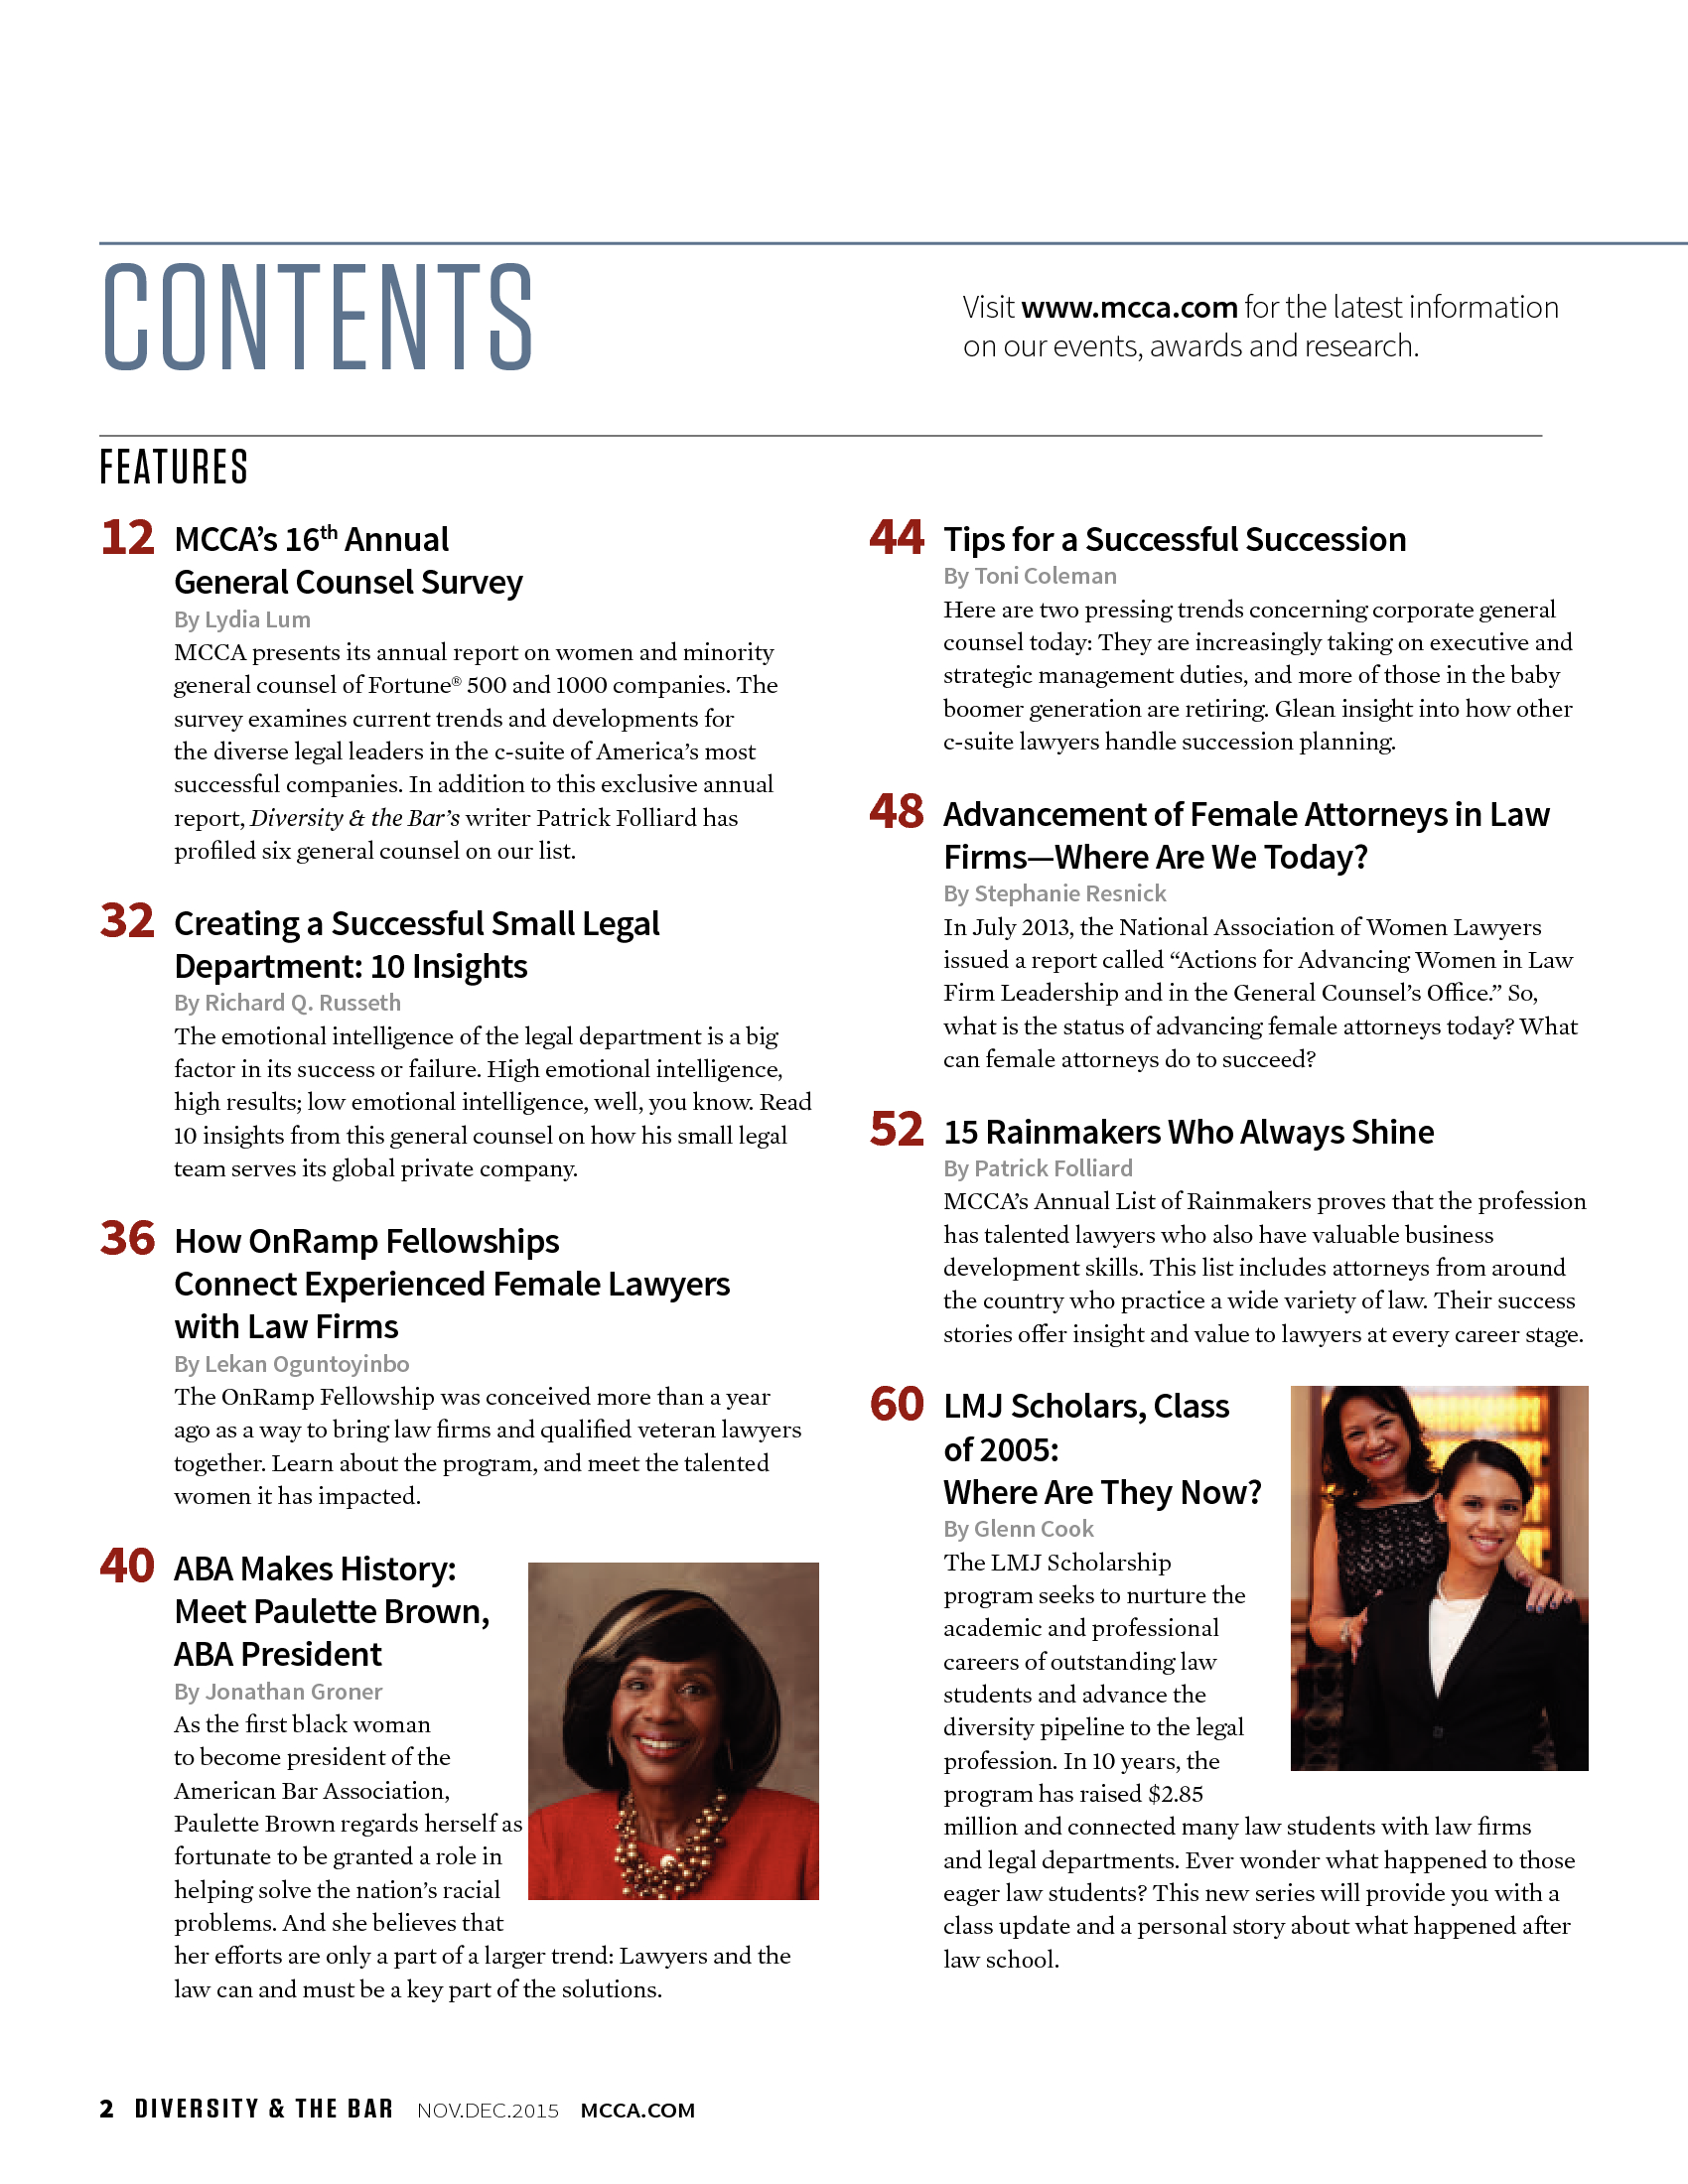 Advisorselect - Advancement of Female Attorneys in Law Firms